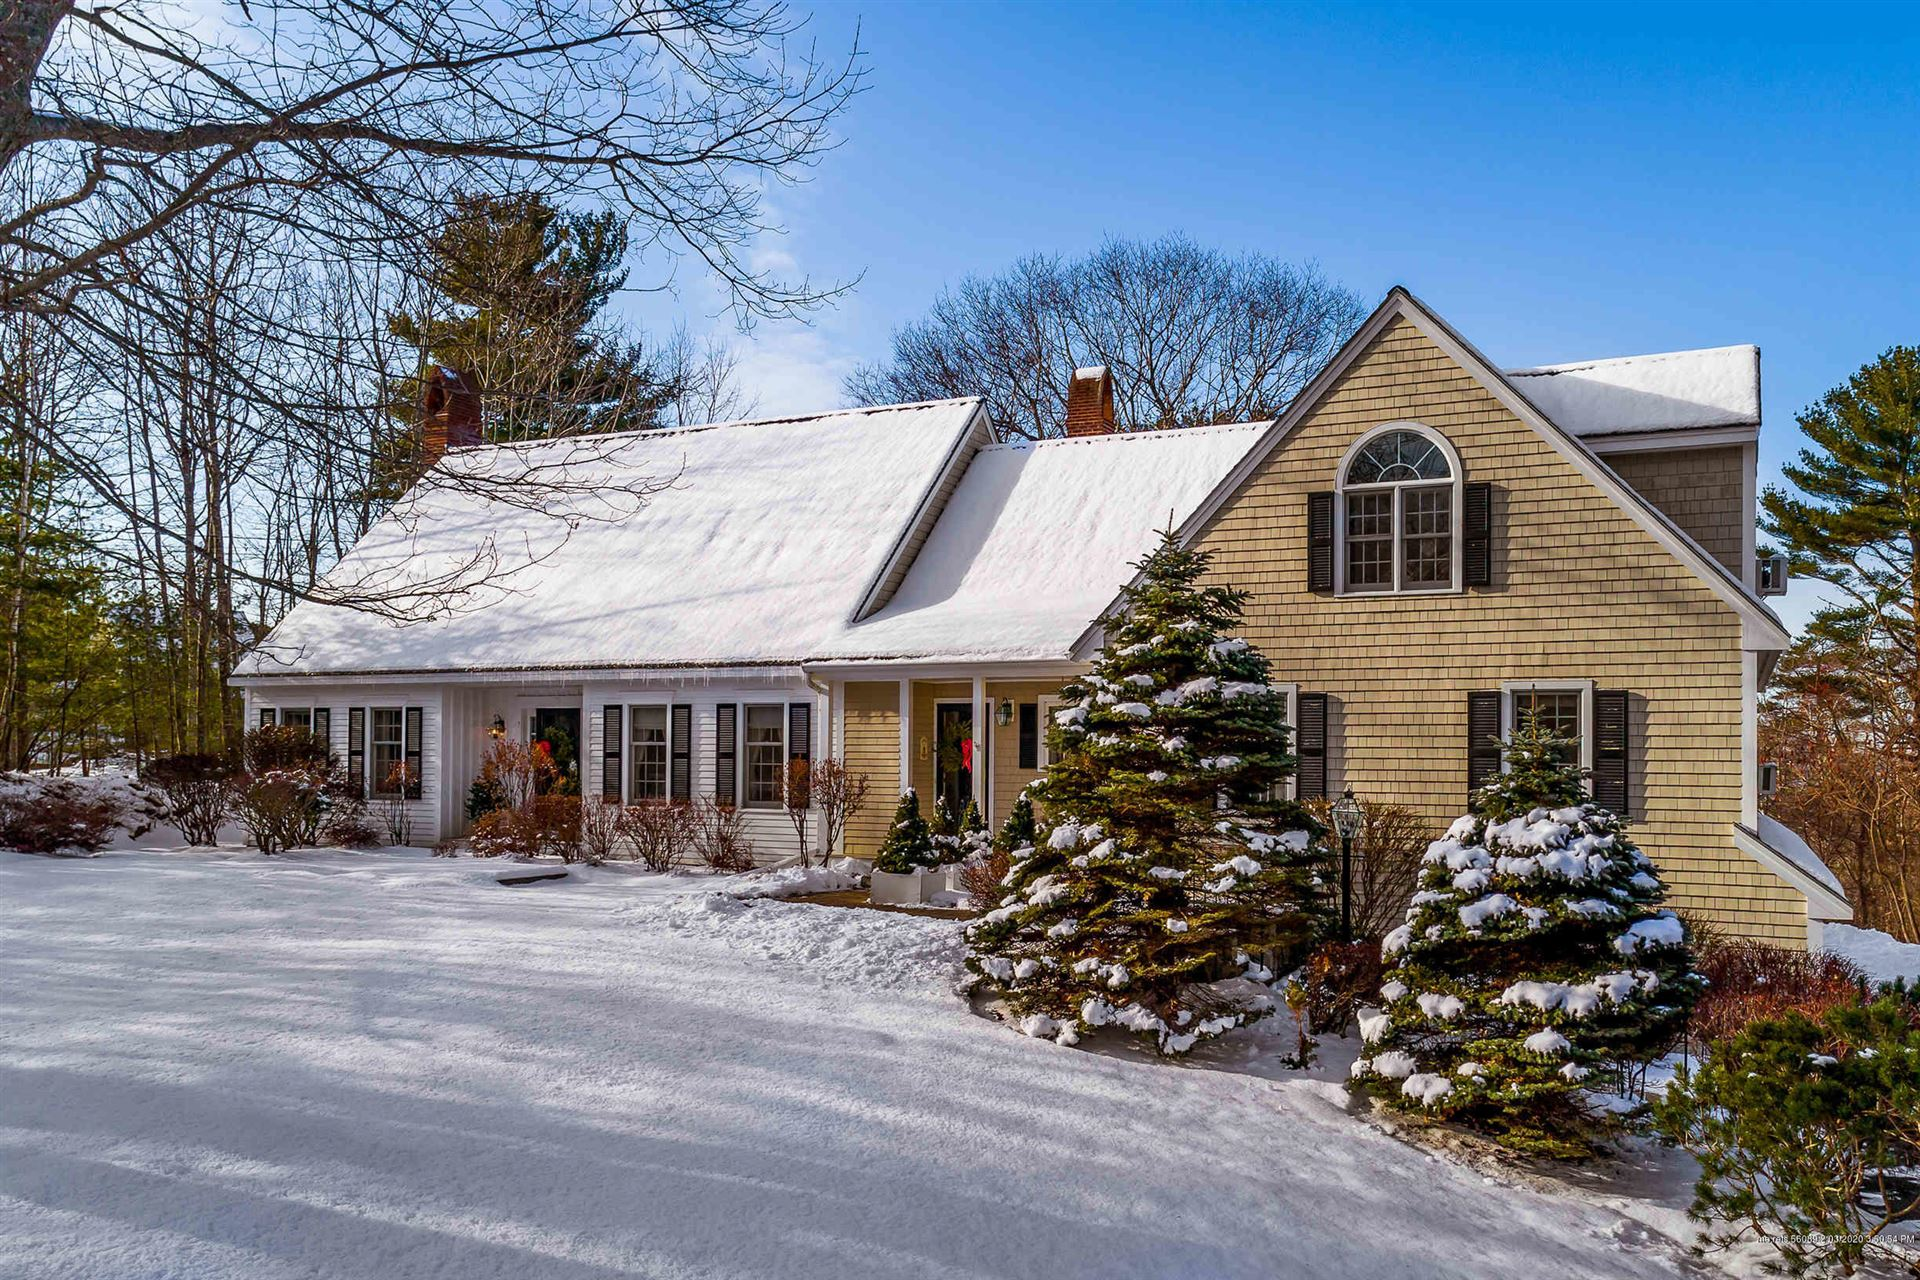 Photo of 4 Wheelhouse Way, Kittery, ME 03905 (MLS # 1443270)